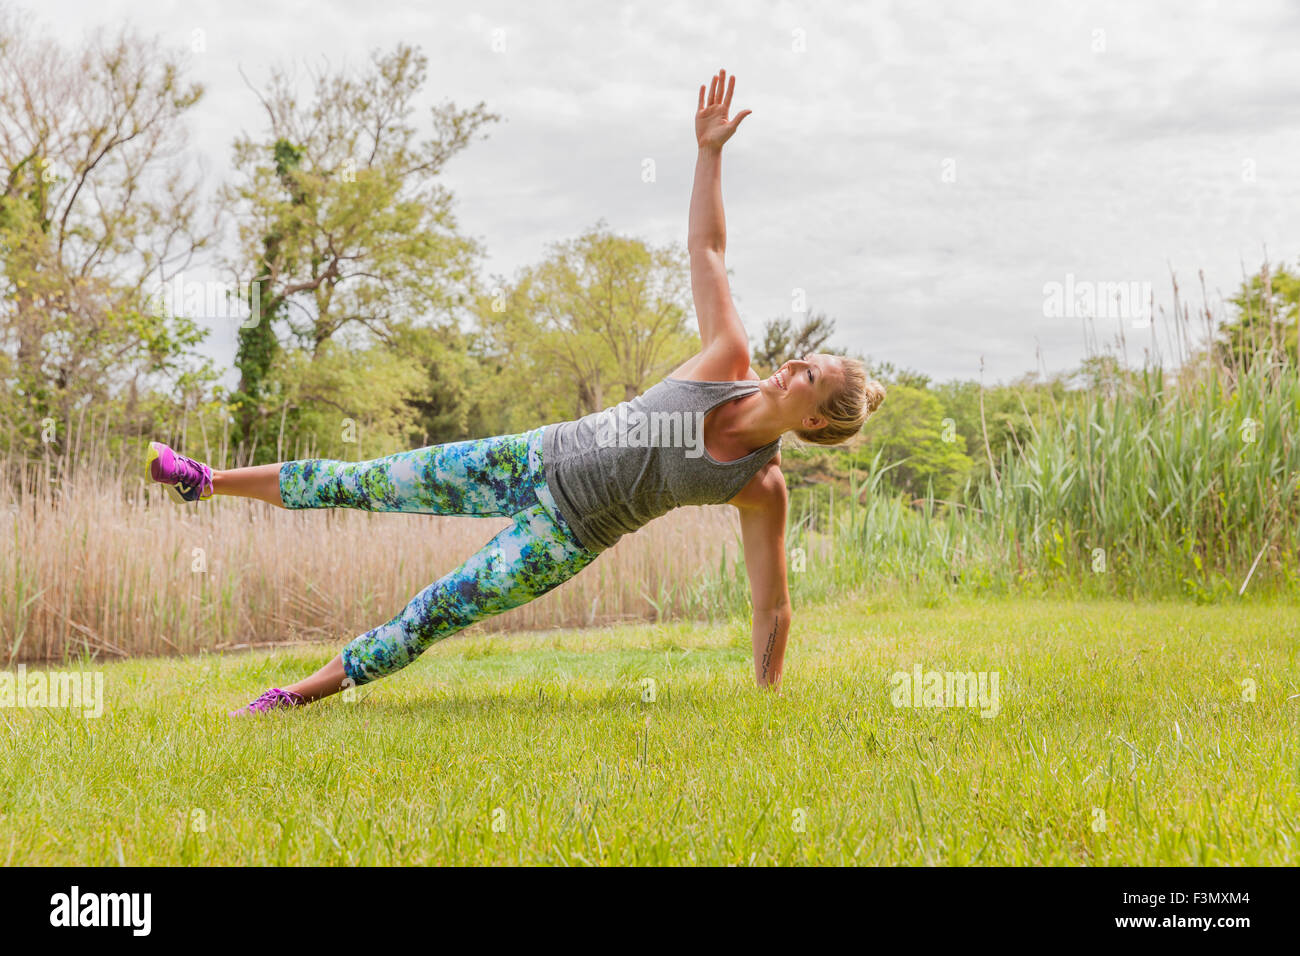 Woman in side plank pose with raised leg - Stock Image